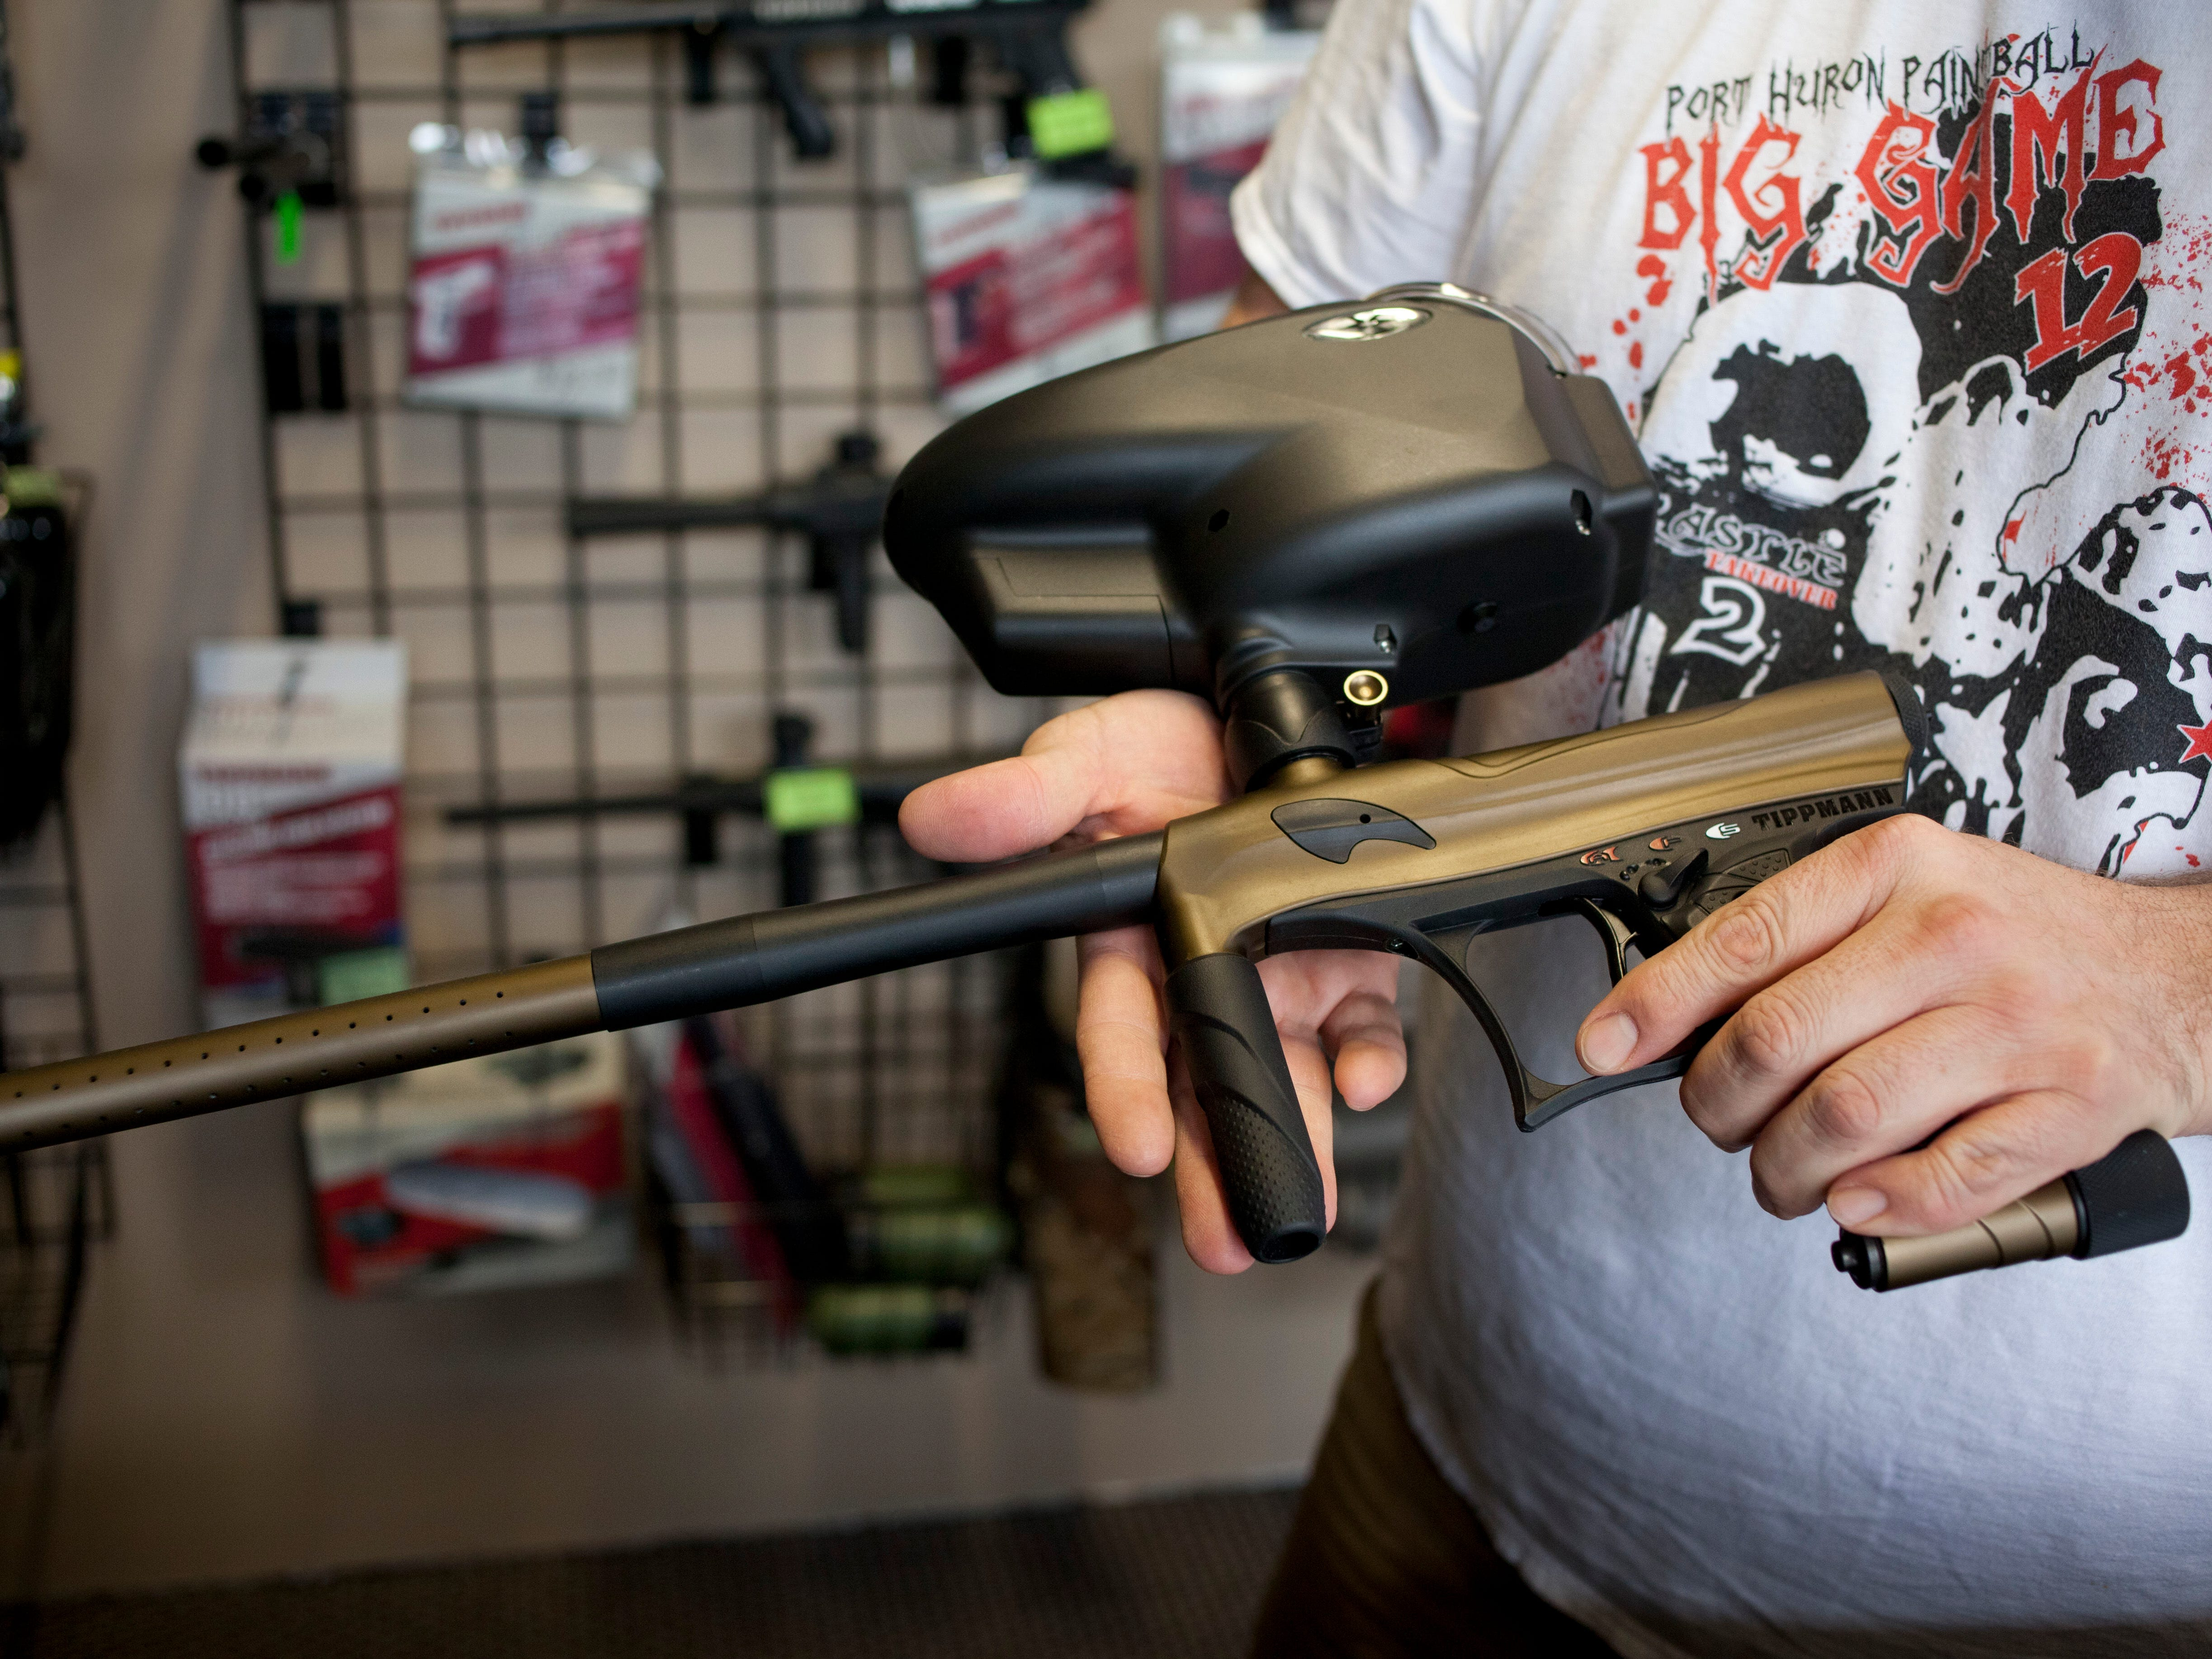 Jason LaTurno shows a paintball marker Thursday, April 9, 2015 at International Paintball in Port Huron.